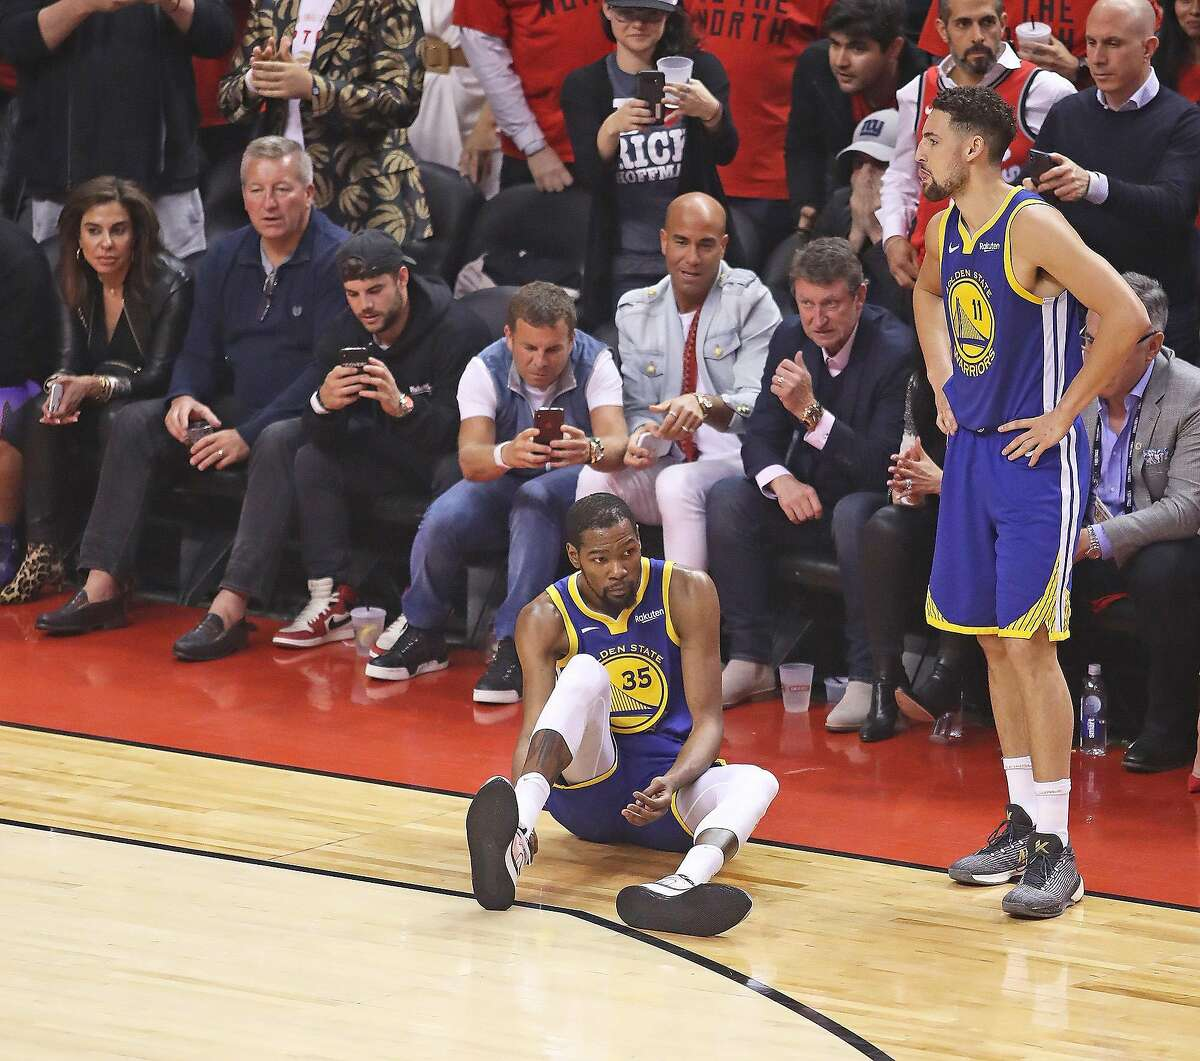 Kevin Durant #35 of the Golden State Warriors goes down with an apparent achilles injury during action against the Toronto Raptors in Game Five of the 2019 NBA Finals at Scotiabank Arena on June 10, 2019 in Toronto, Canada. (Claus Andersen/Getty Images/TNS)